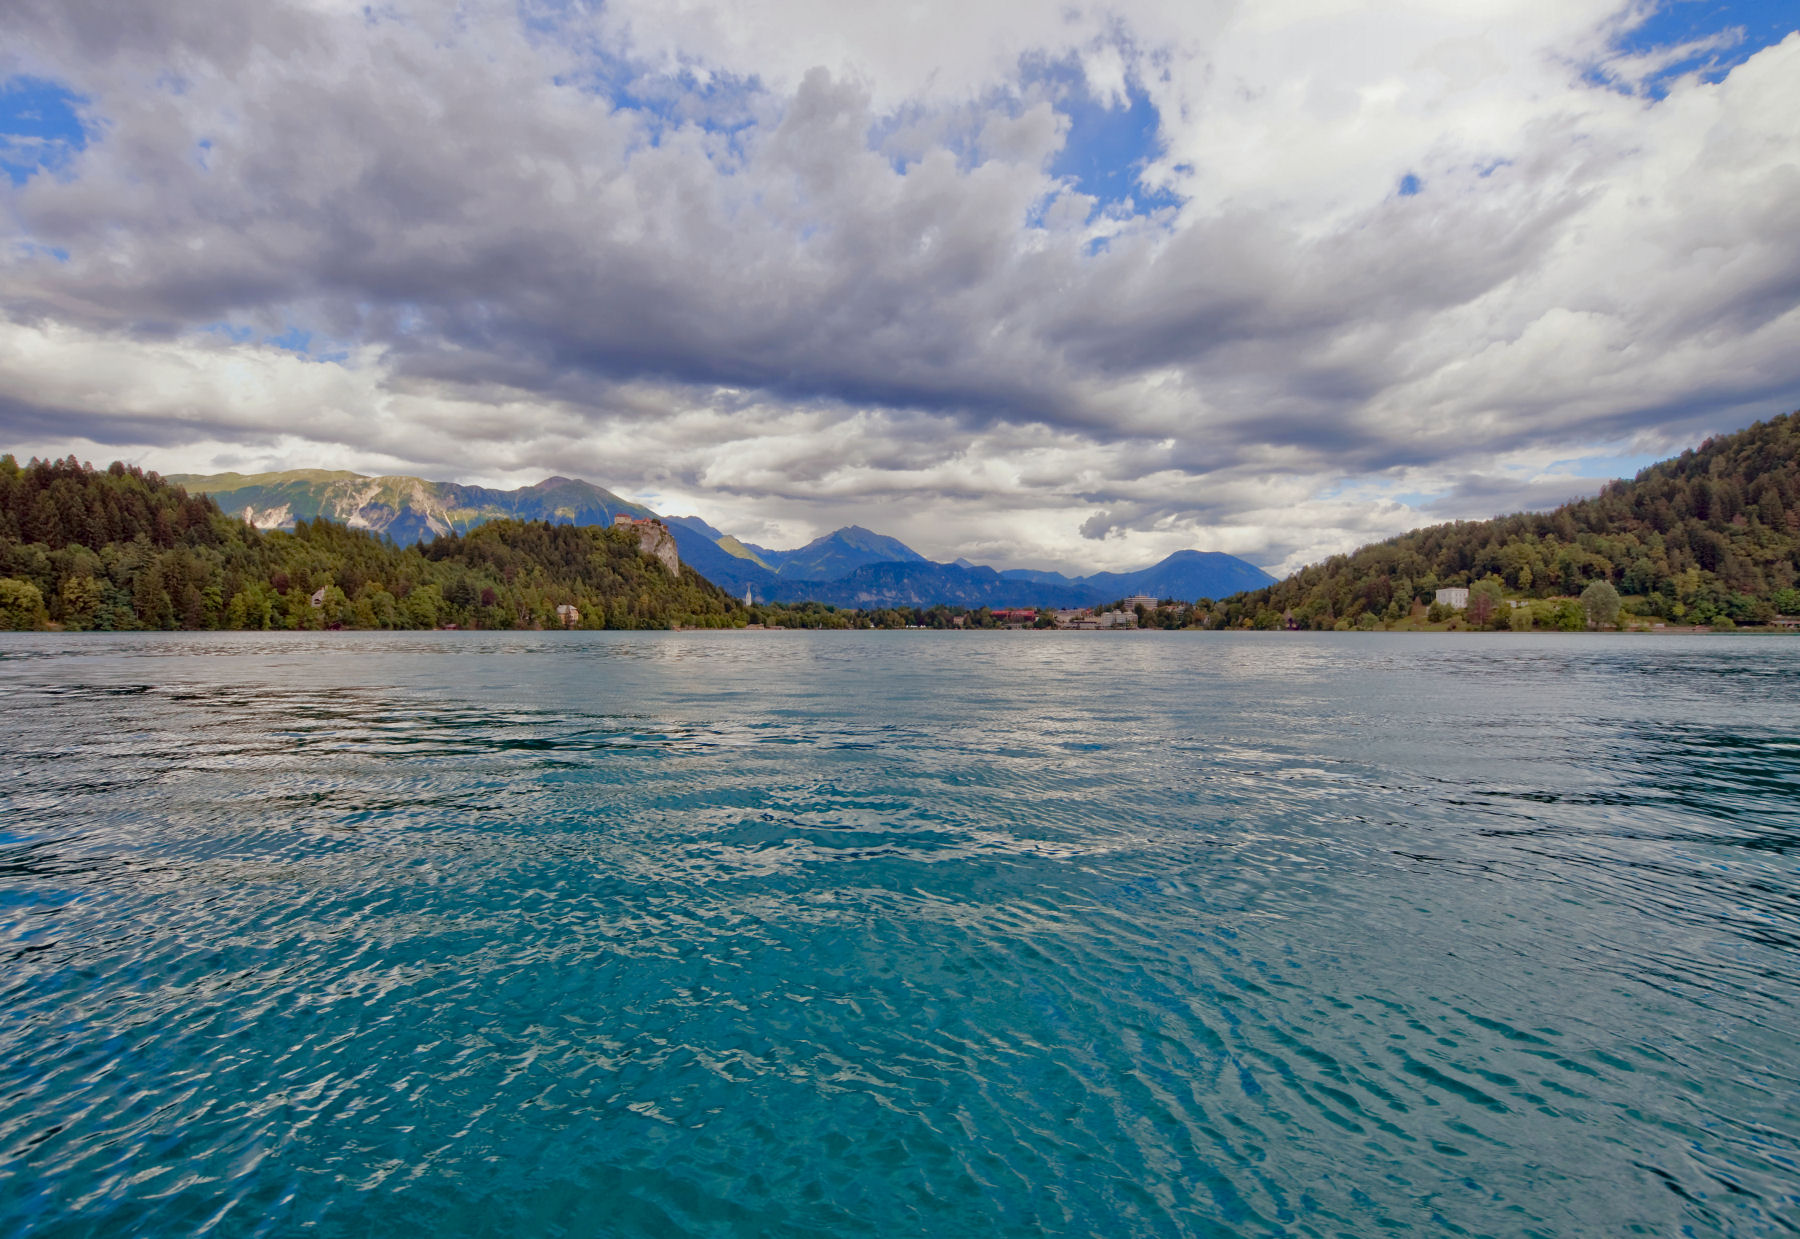 The water of Lake Bled is still clean